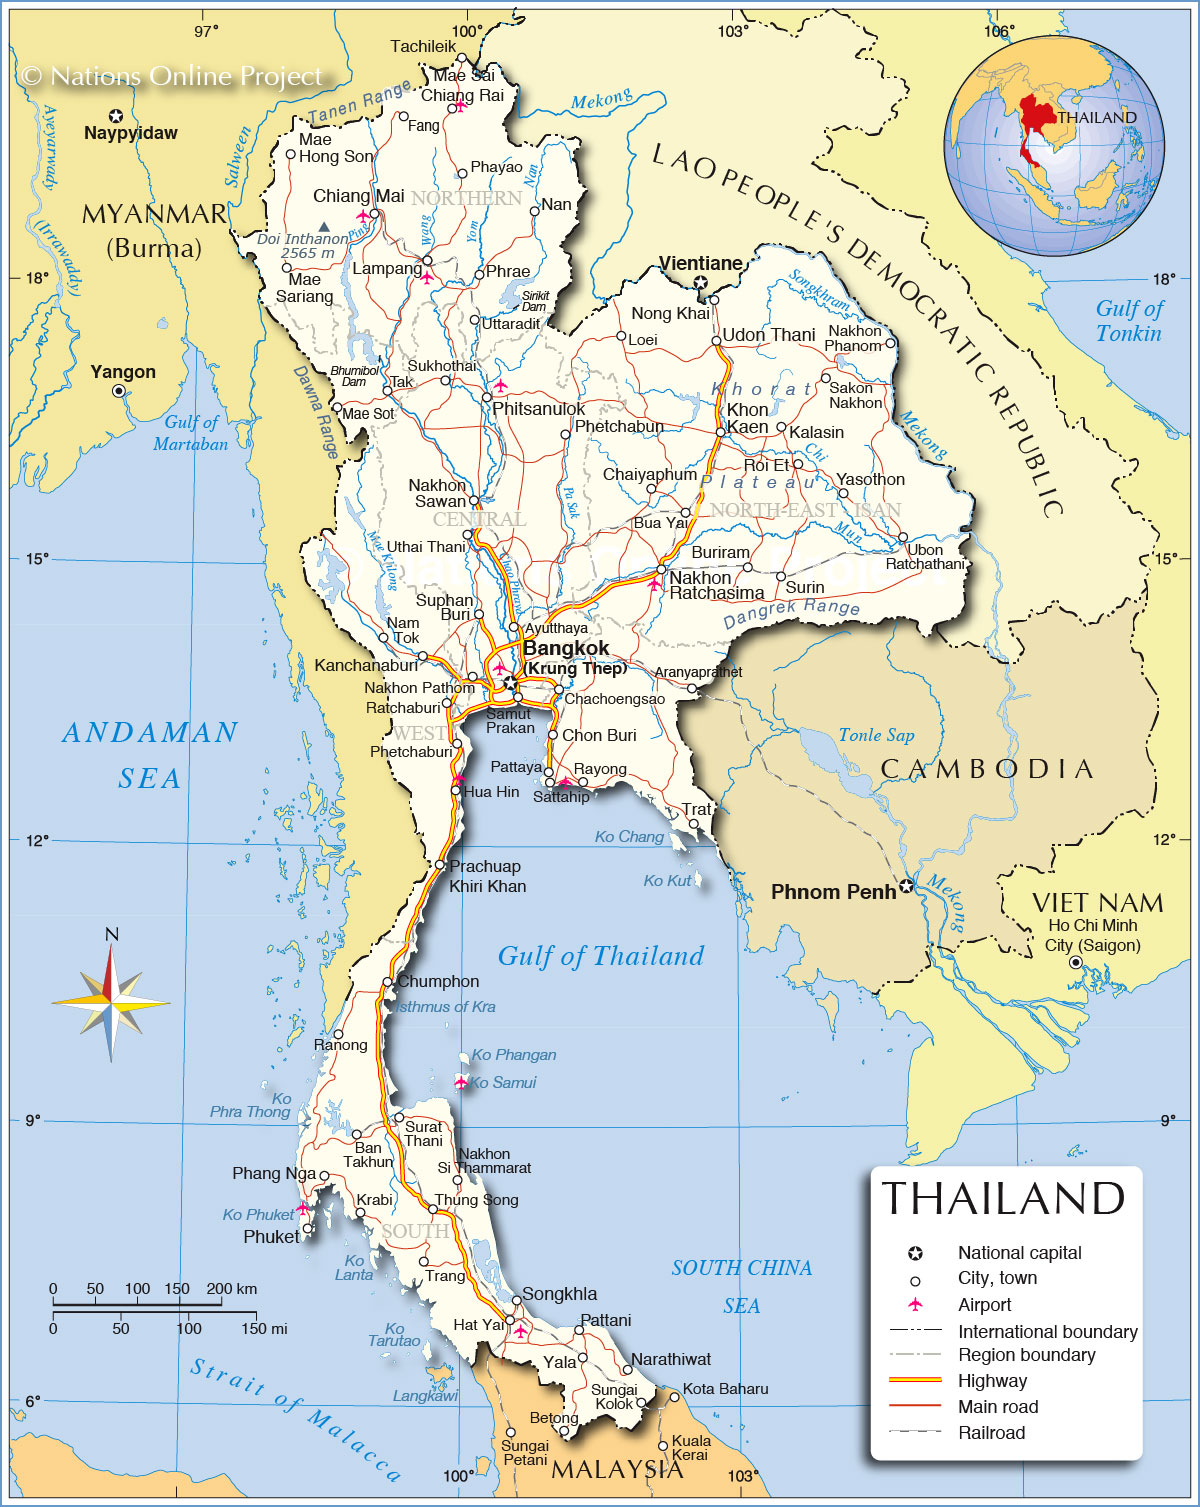 Regions Map of Thailand  Nations Online Project